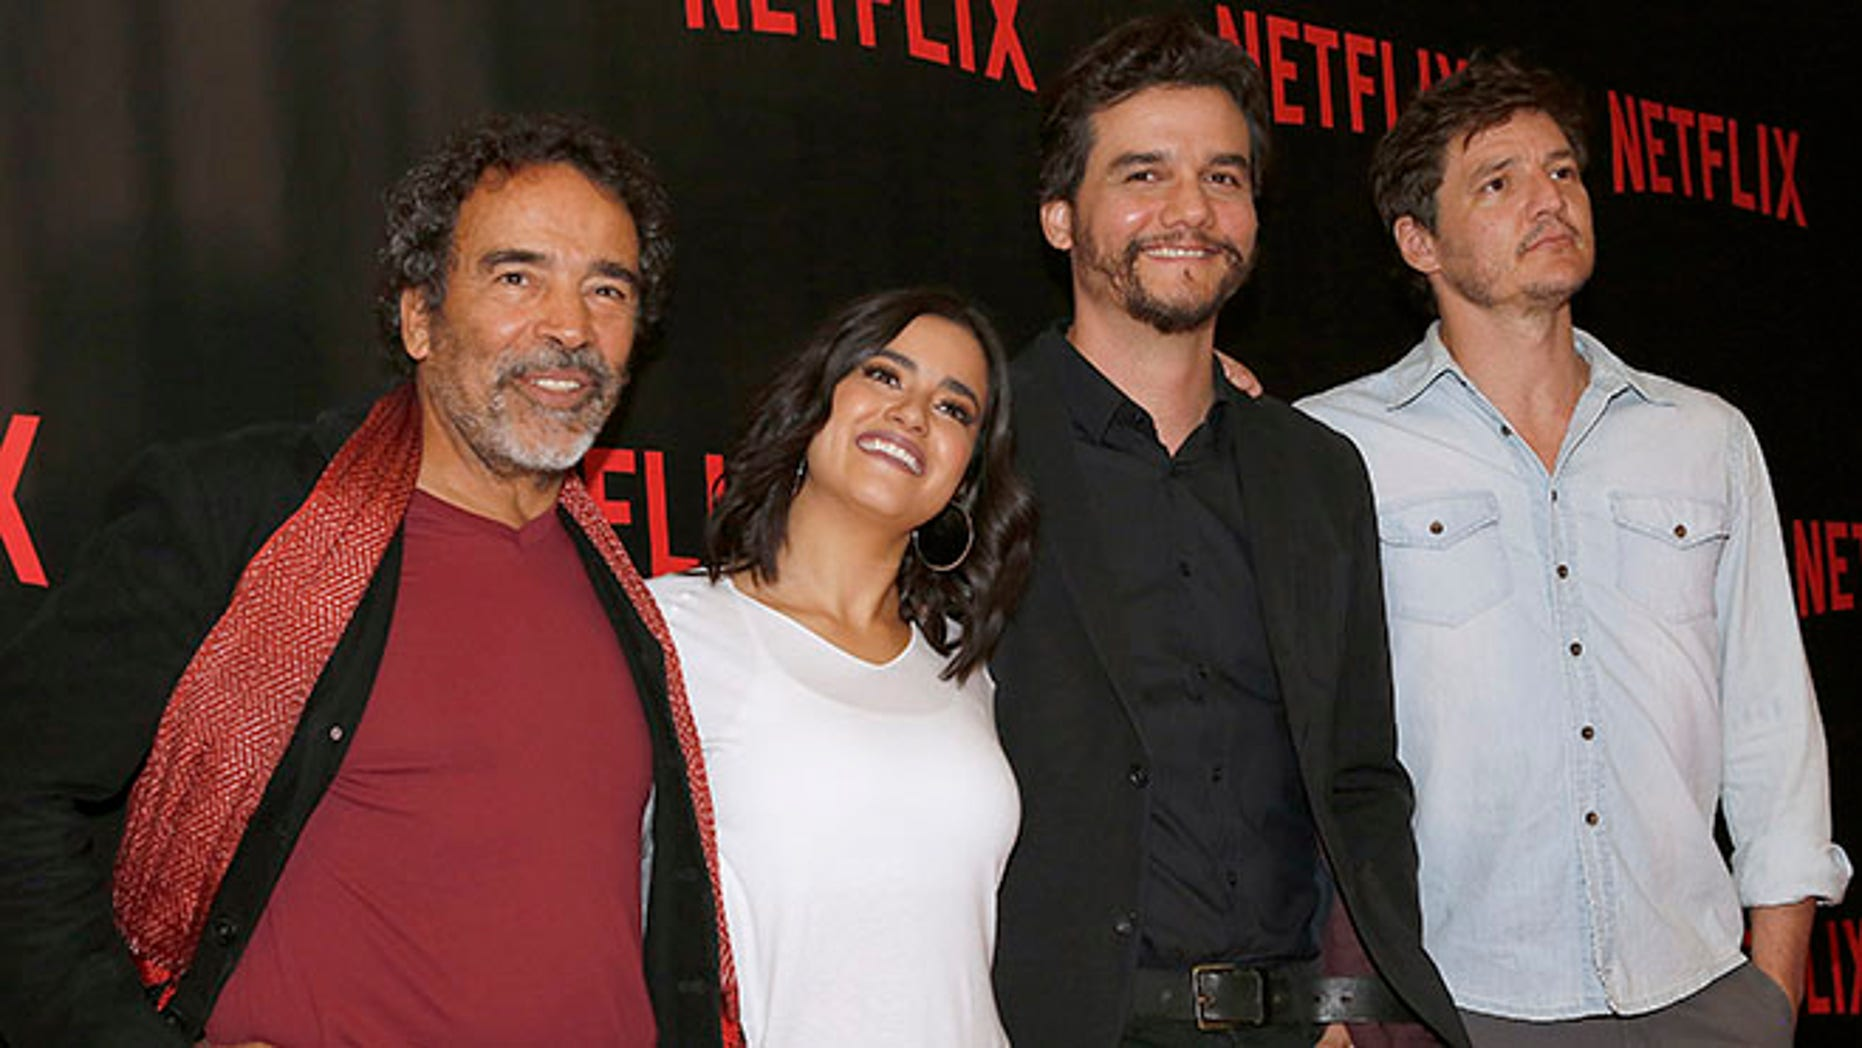 "Damian Alcazar, from left to right, who plays the role of a Cali druglord named Gilberto Orejuela in the Netflix series ""Narcos"", Paulina Gaitan, who plays the character of Pablo Escobar's wife Tata, Wagner Moura, who plays the role of Pablo Escobar, and, Pedro Pascal, who plays the role of a DEA agent named Javier Peña, pose for photos during a media call to promote their second season, in Mexico City, Tuesday, Aug. 16, 2016. ""Narcos"" the Netflix series about the history of the cocaine route presents the downfall of Pablo Escobar in its second season premiering worldwide on Sept.2. (AP Photo/Marco Ugarte)"